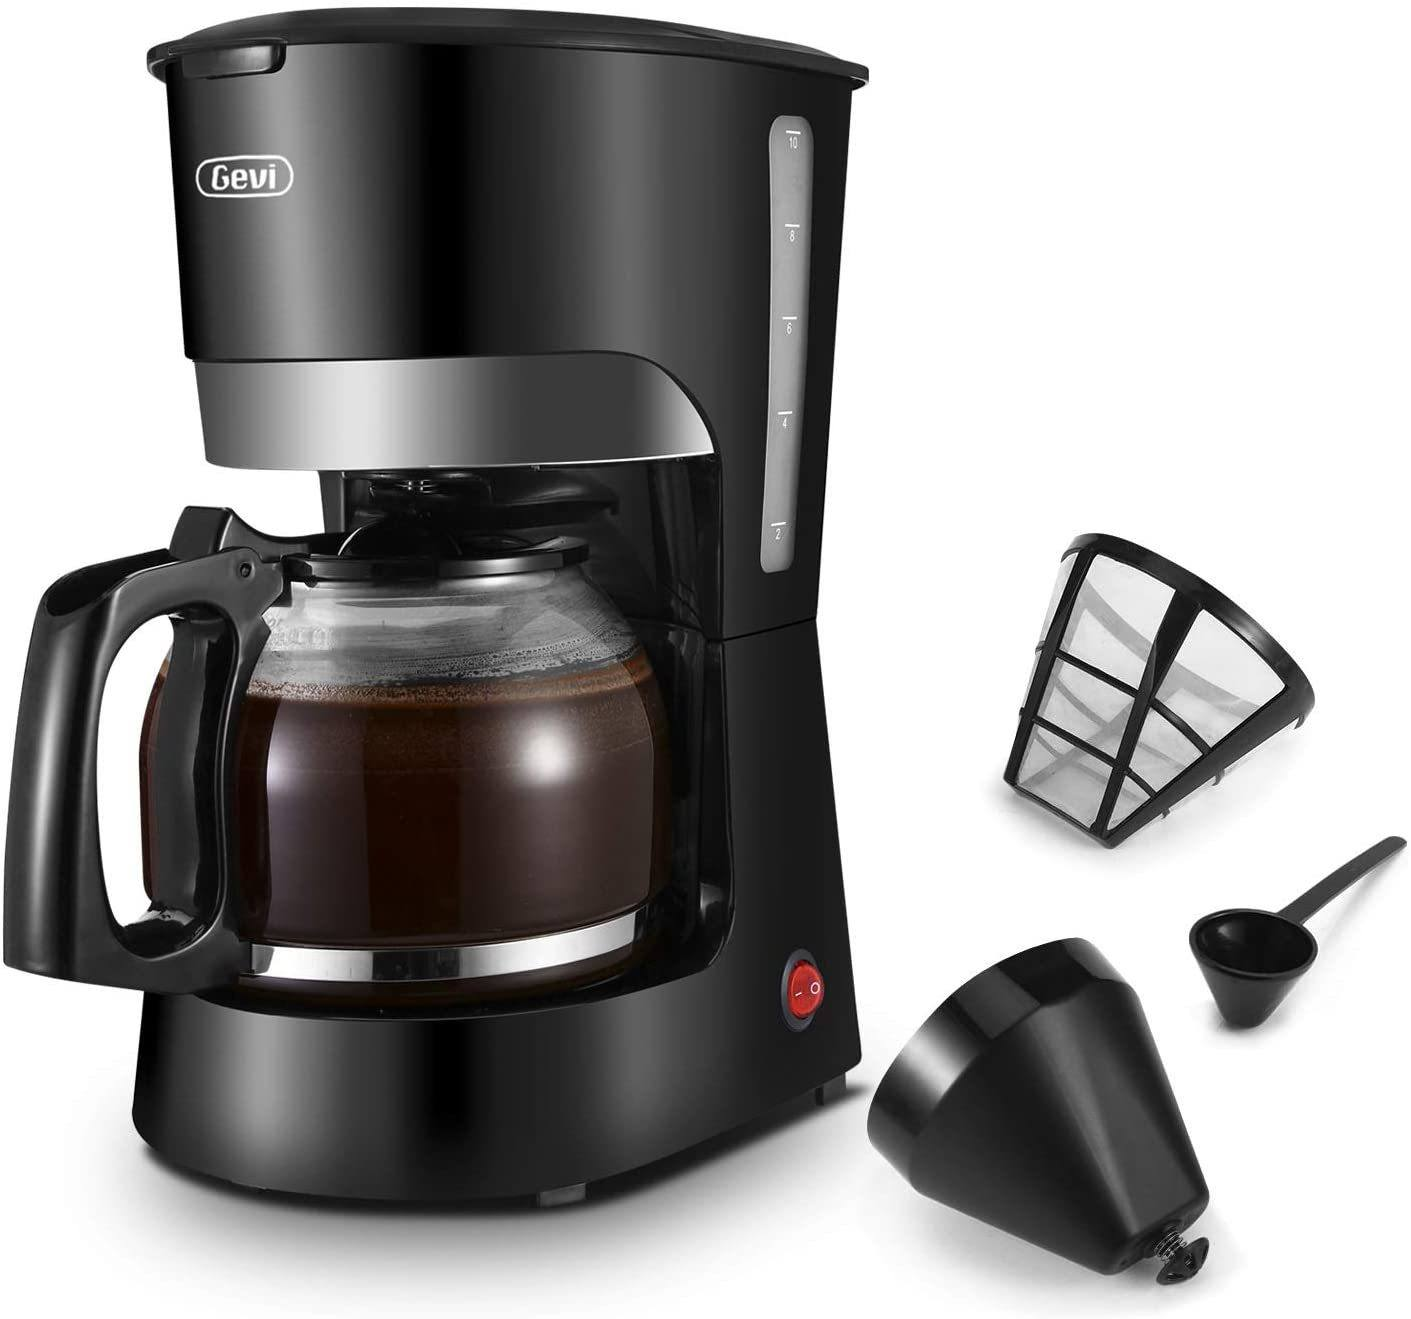 Gevi 10-Cup Coffee Maker